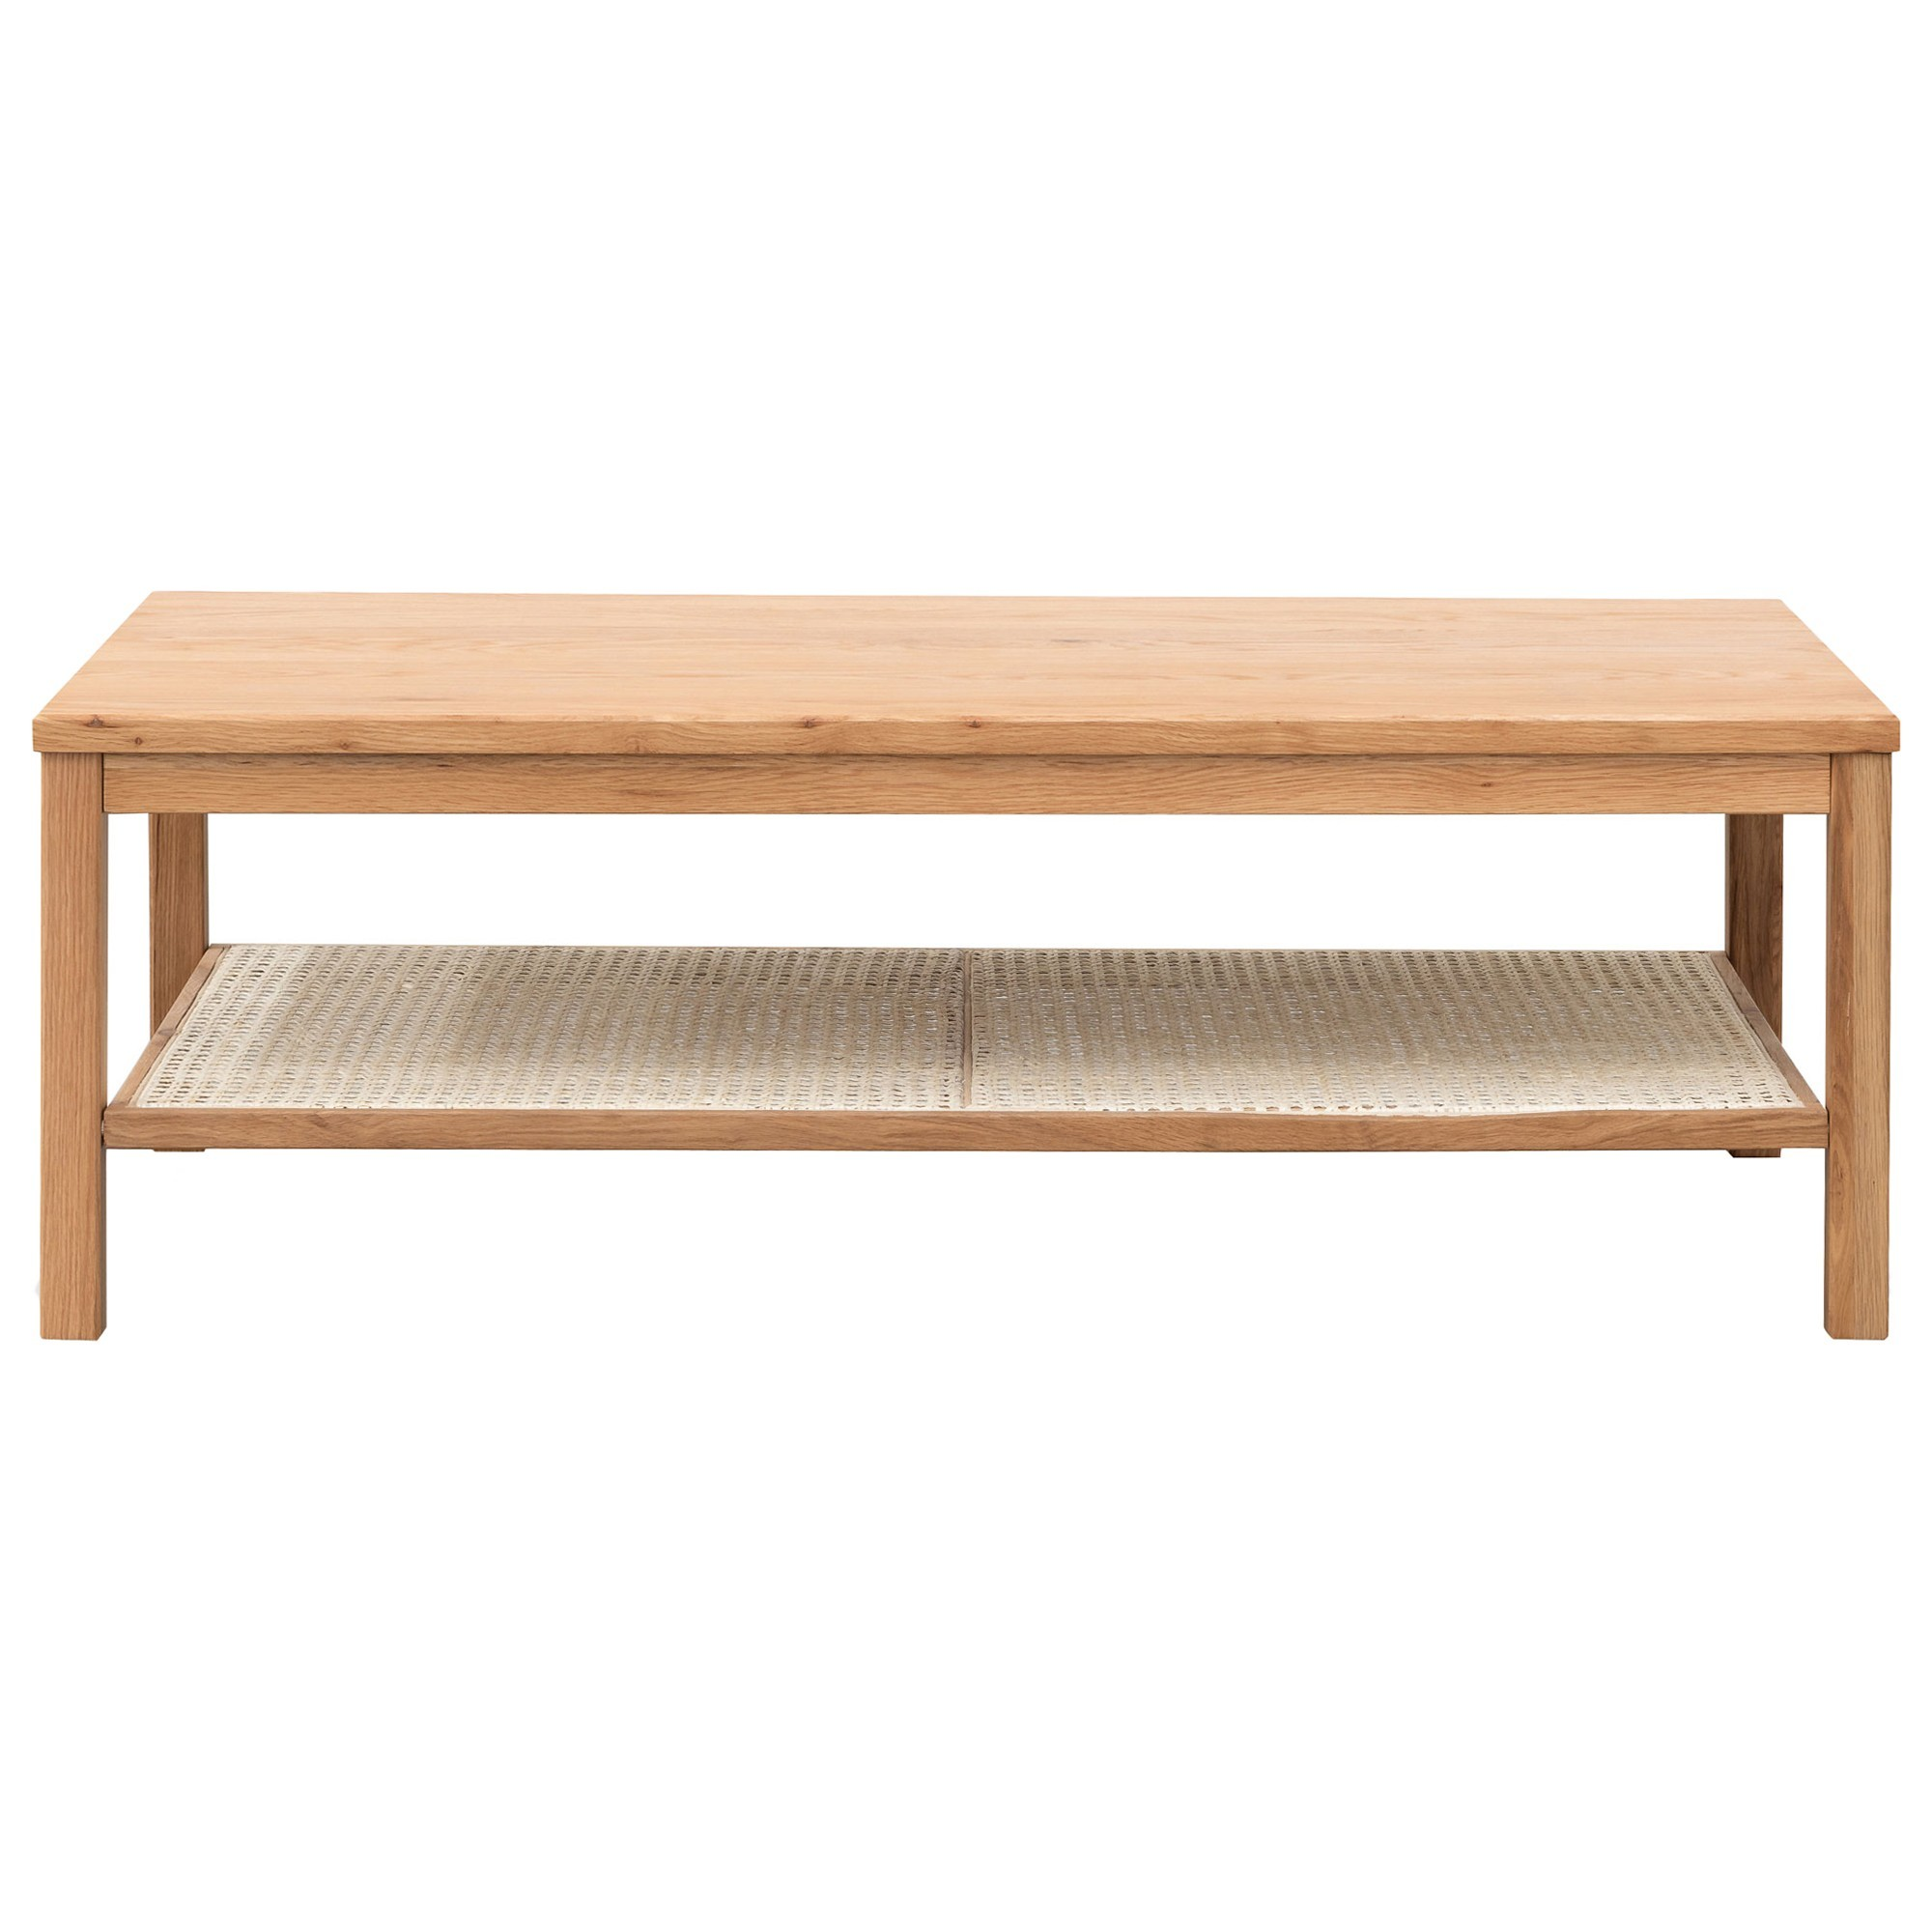 Hampden Wooden Coffee Table, 119cm, Oak